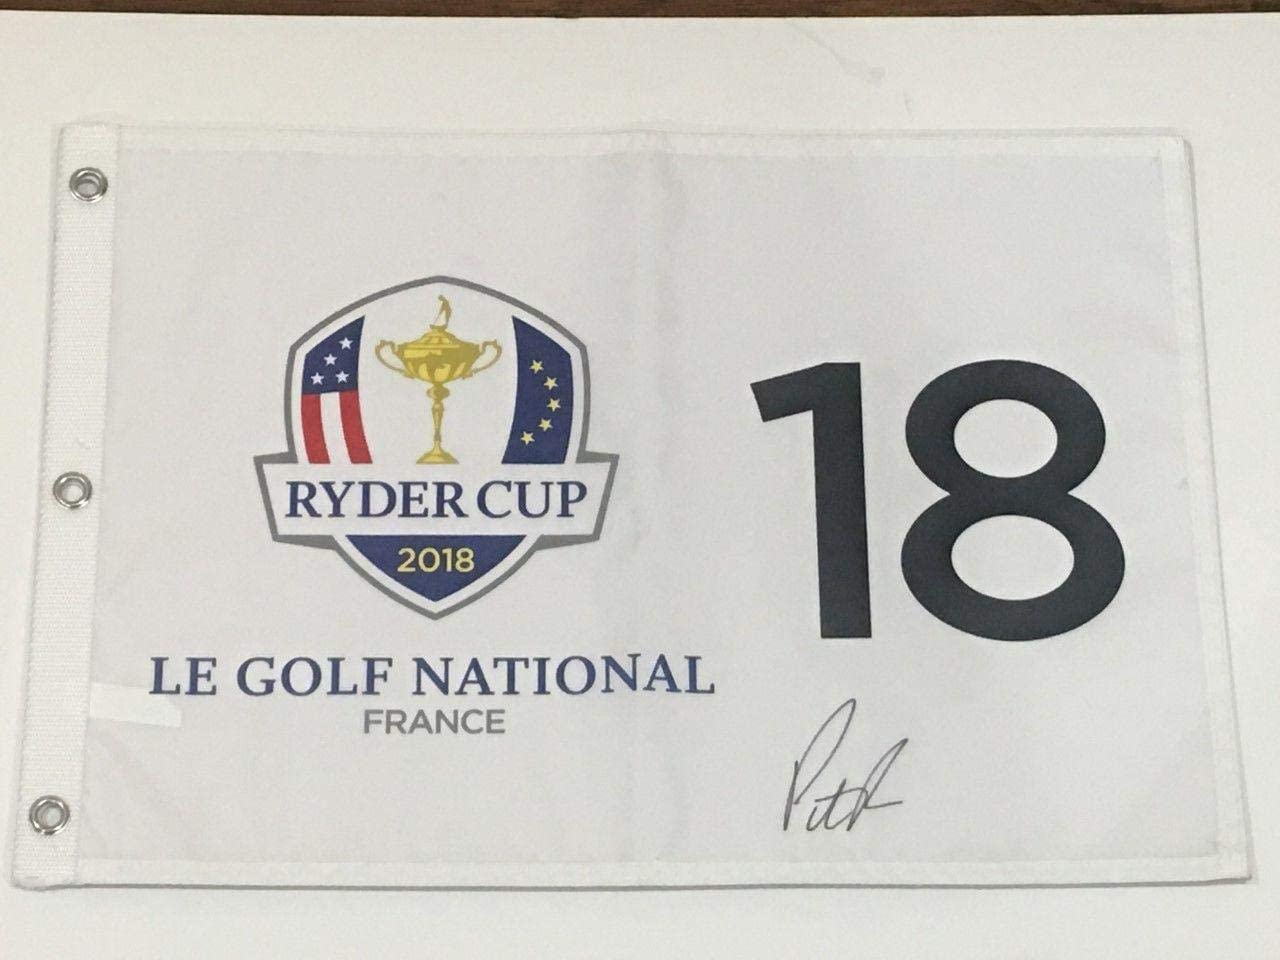 Patrick Reed Signed 2018 Ryder Cup Flag Le Golf National France Team Usa Proof - Autographed Golf Pin Flags